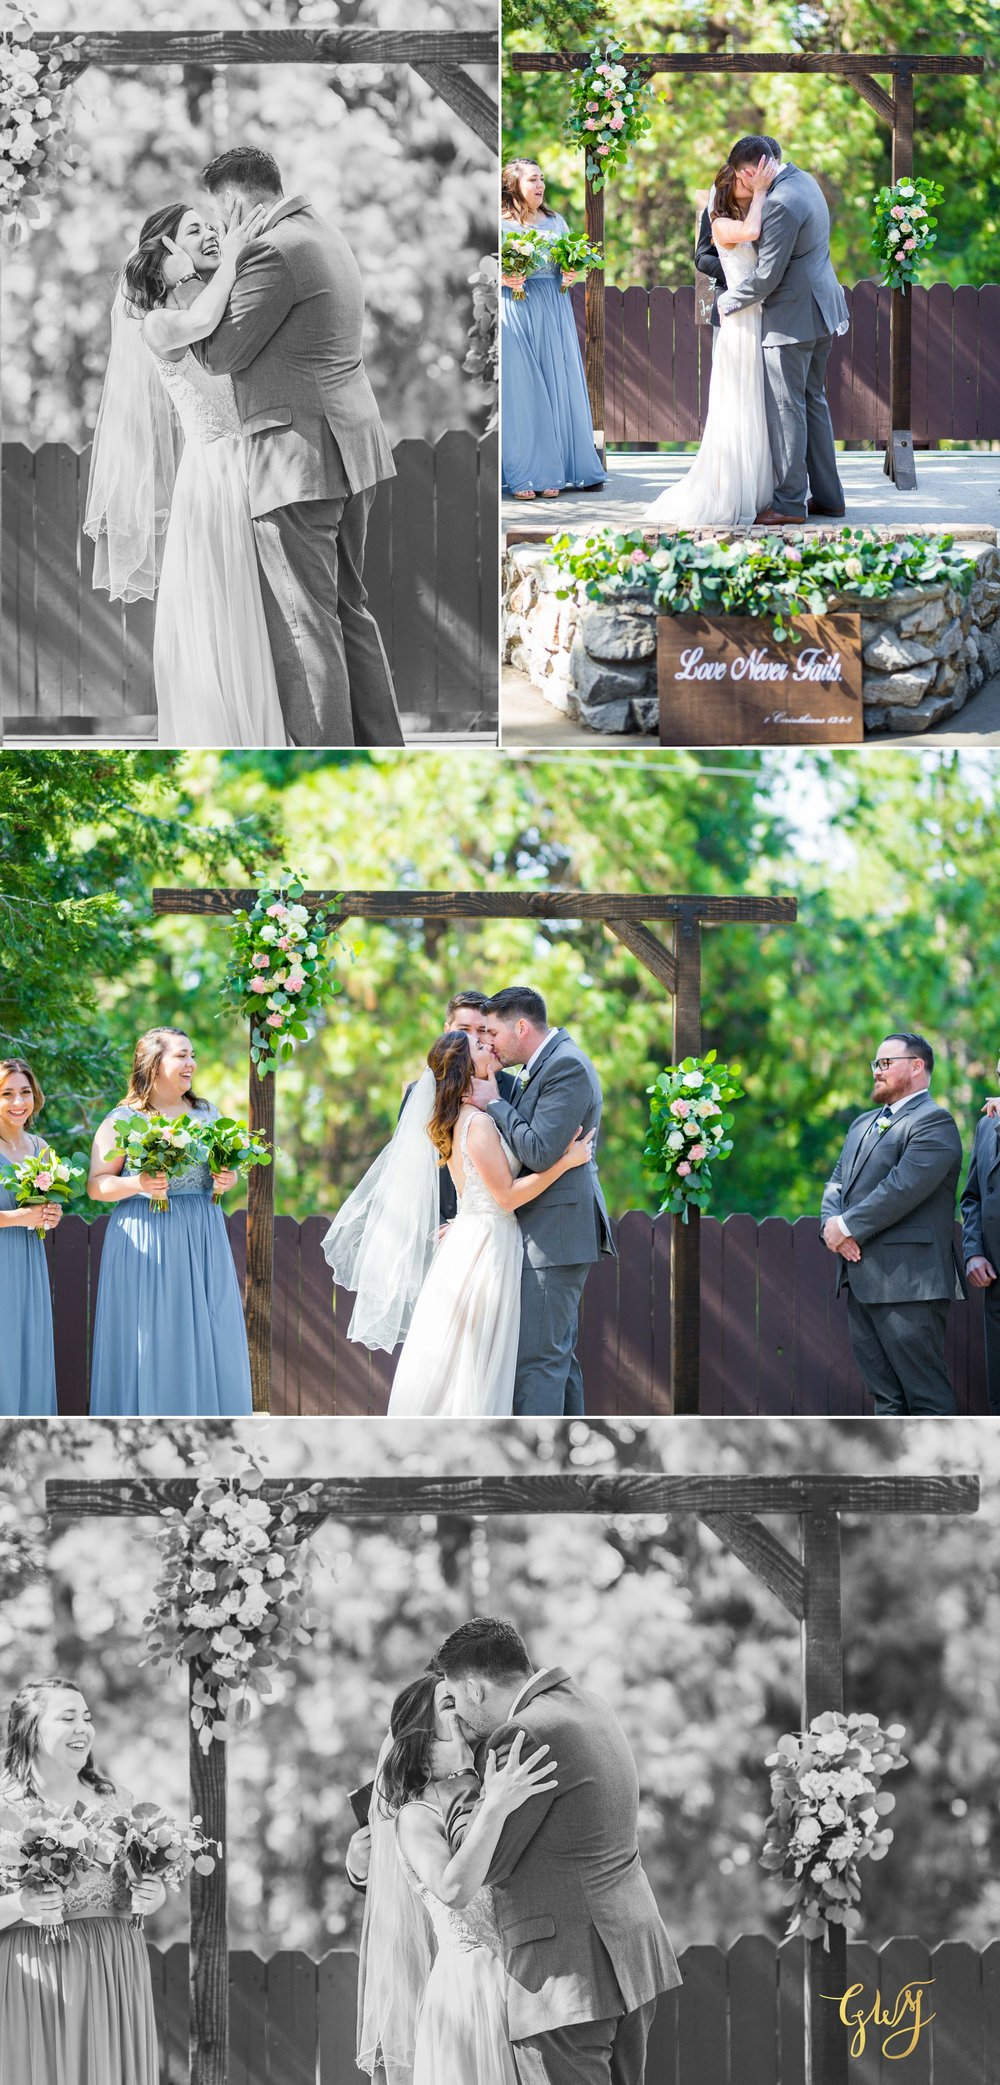 Allison + Jared Southern California Mountain Thousand Pines Christian Camp Wedding by Glass Woods Media 23.jpg